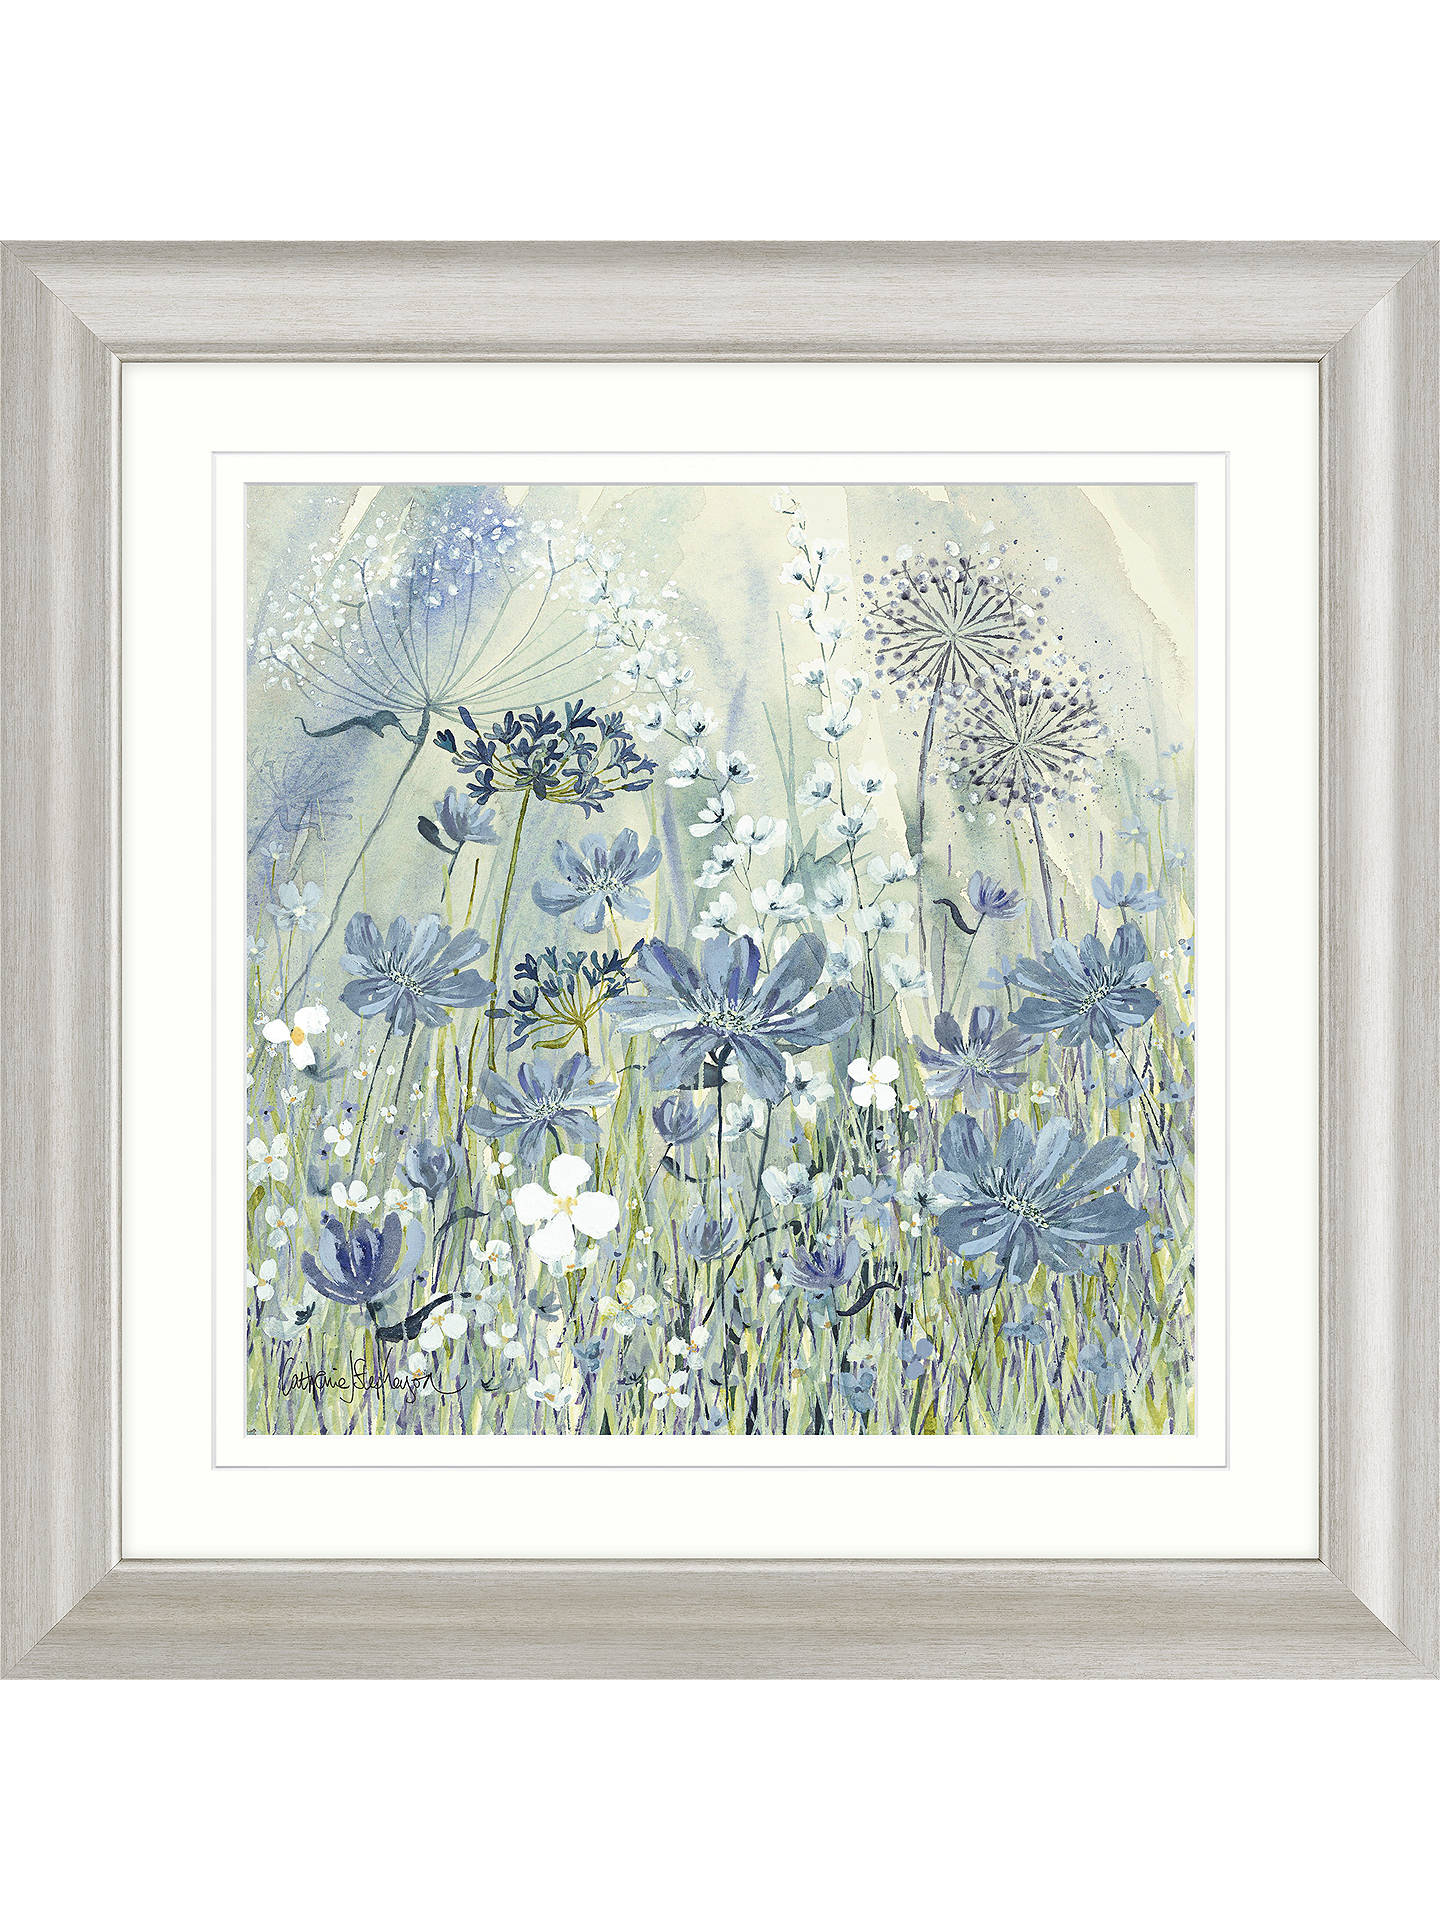 Buy Catherine Stephenson - Powder Blue Flowers II Framed Print & Mount, 68.5 x 68.5